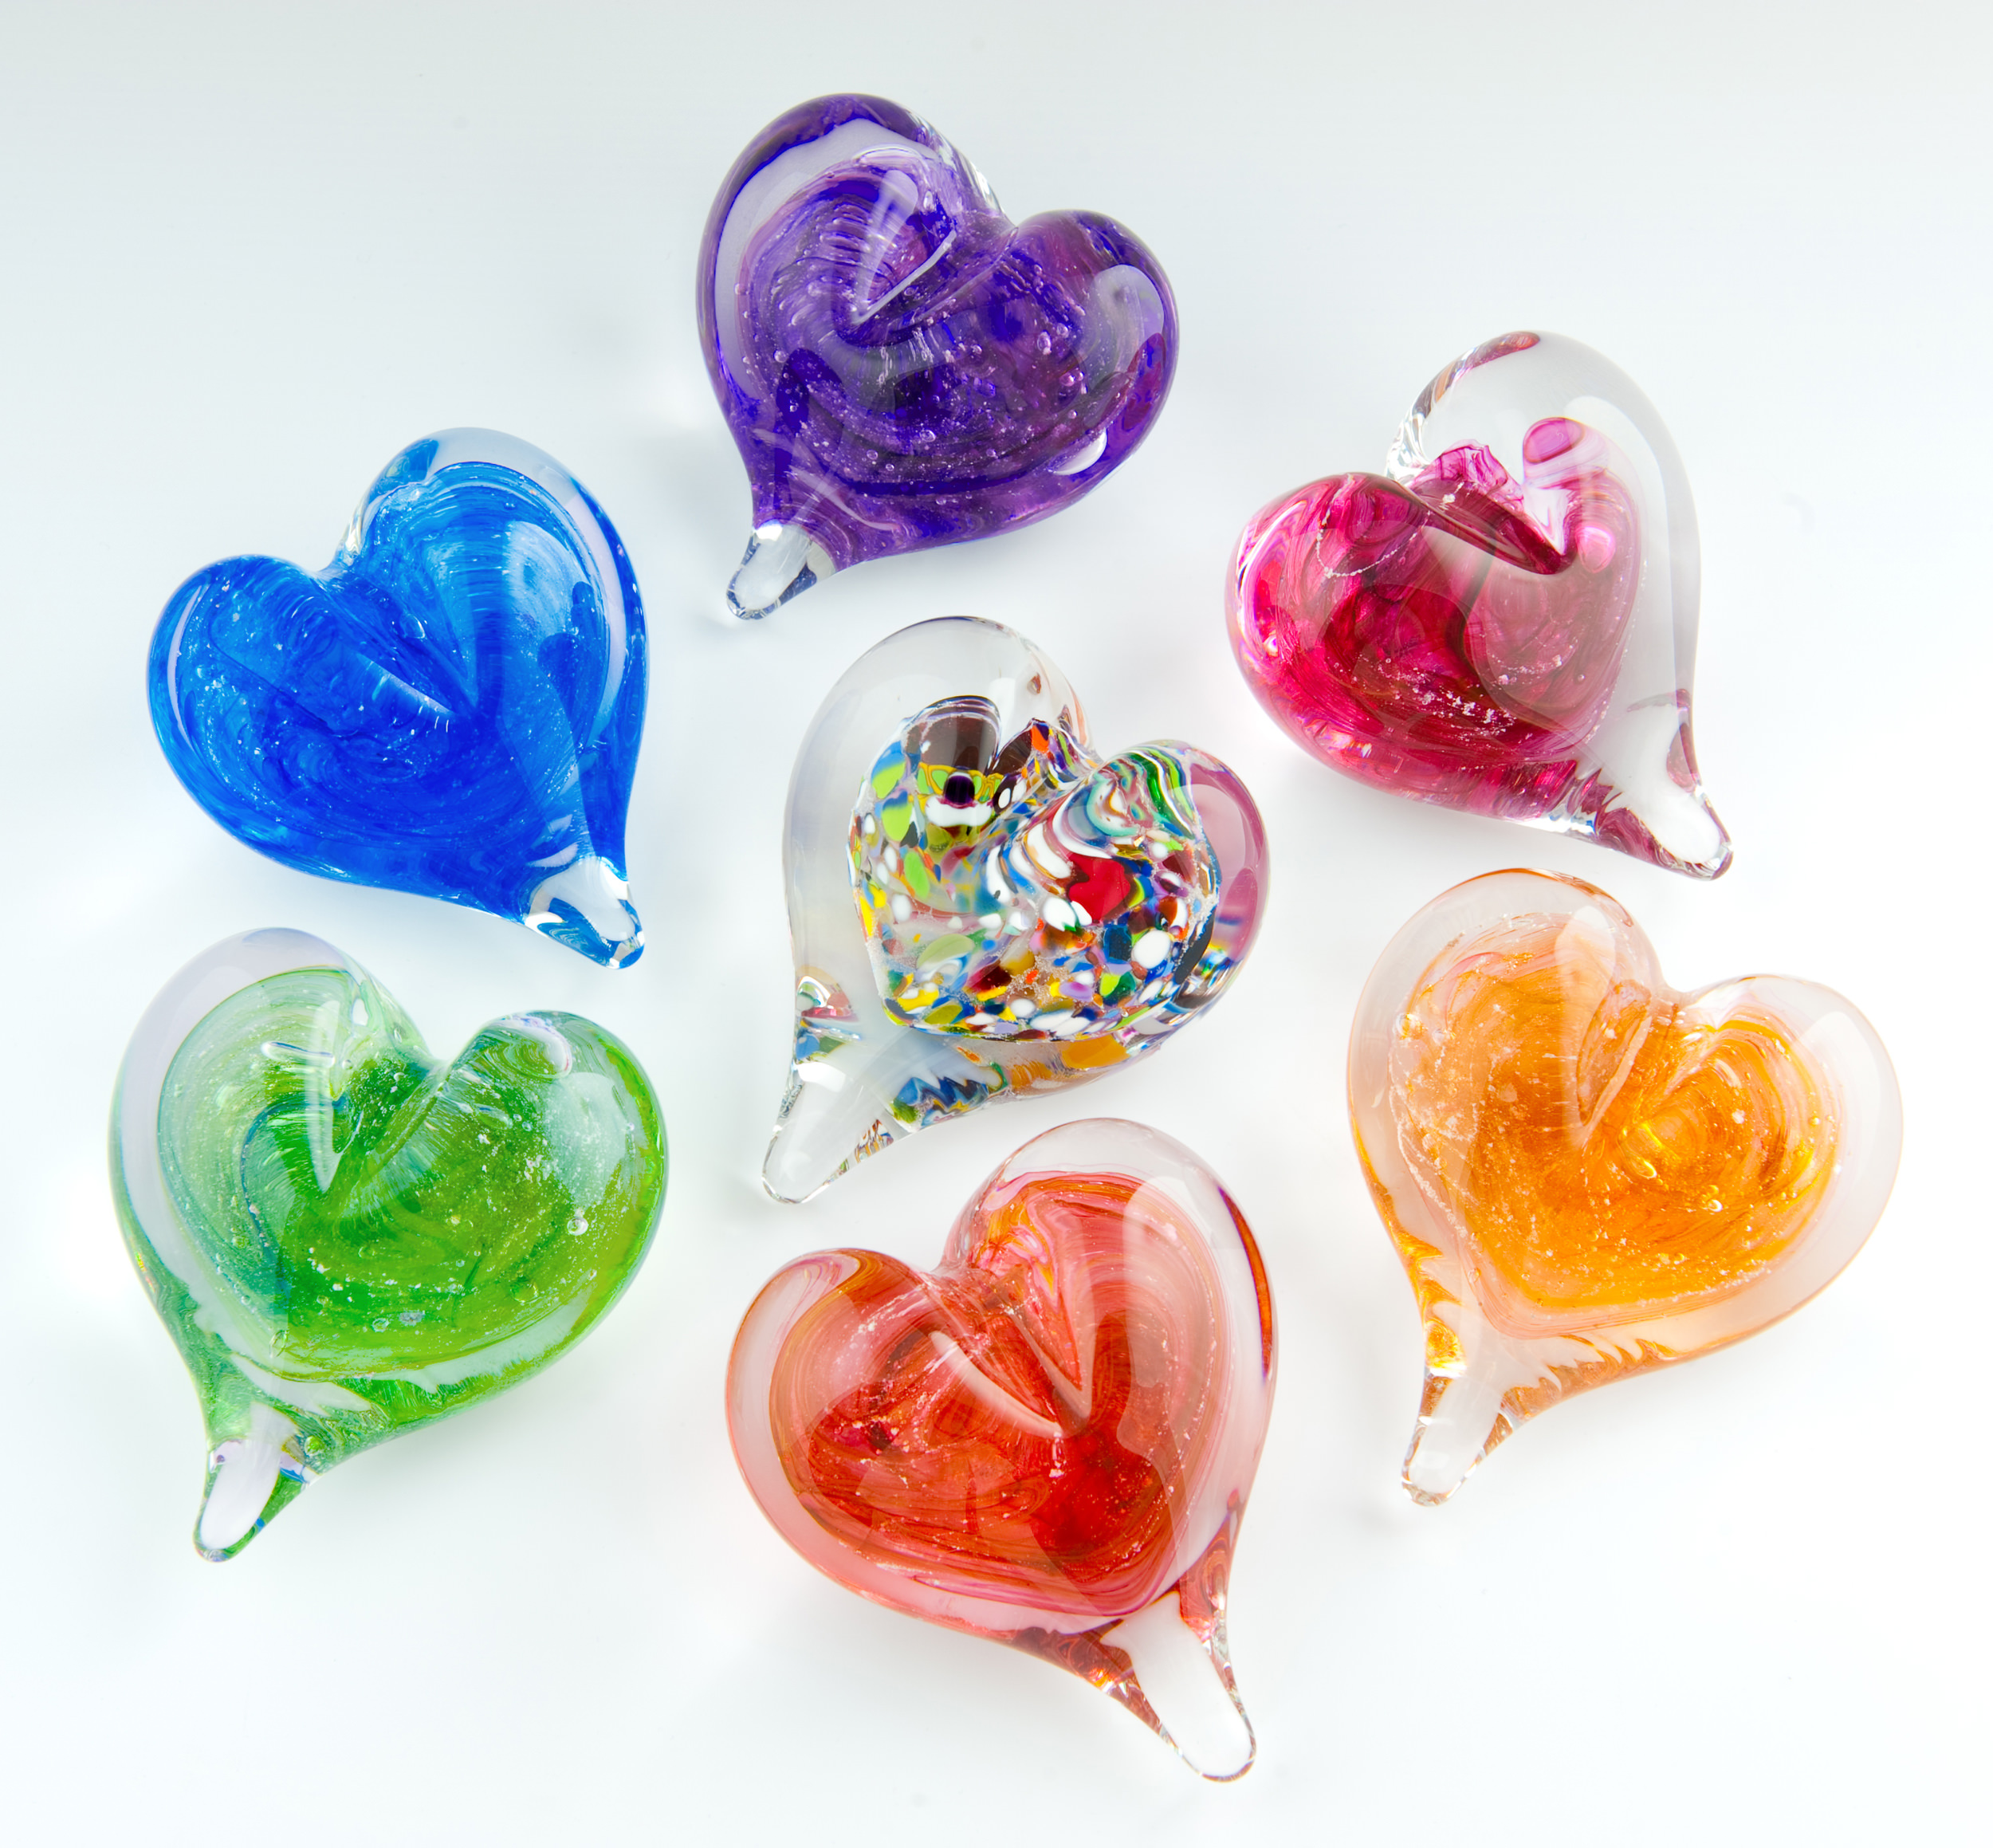 Our Heart Paperweights are seen here in Violet, Red, Blue, Multicolored, Green, Gold, and Peach.